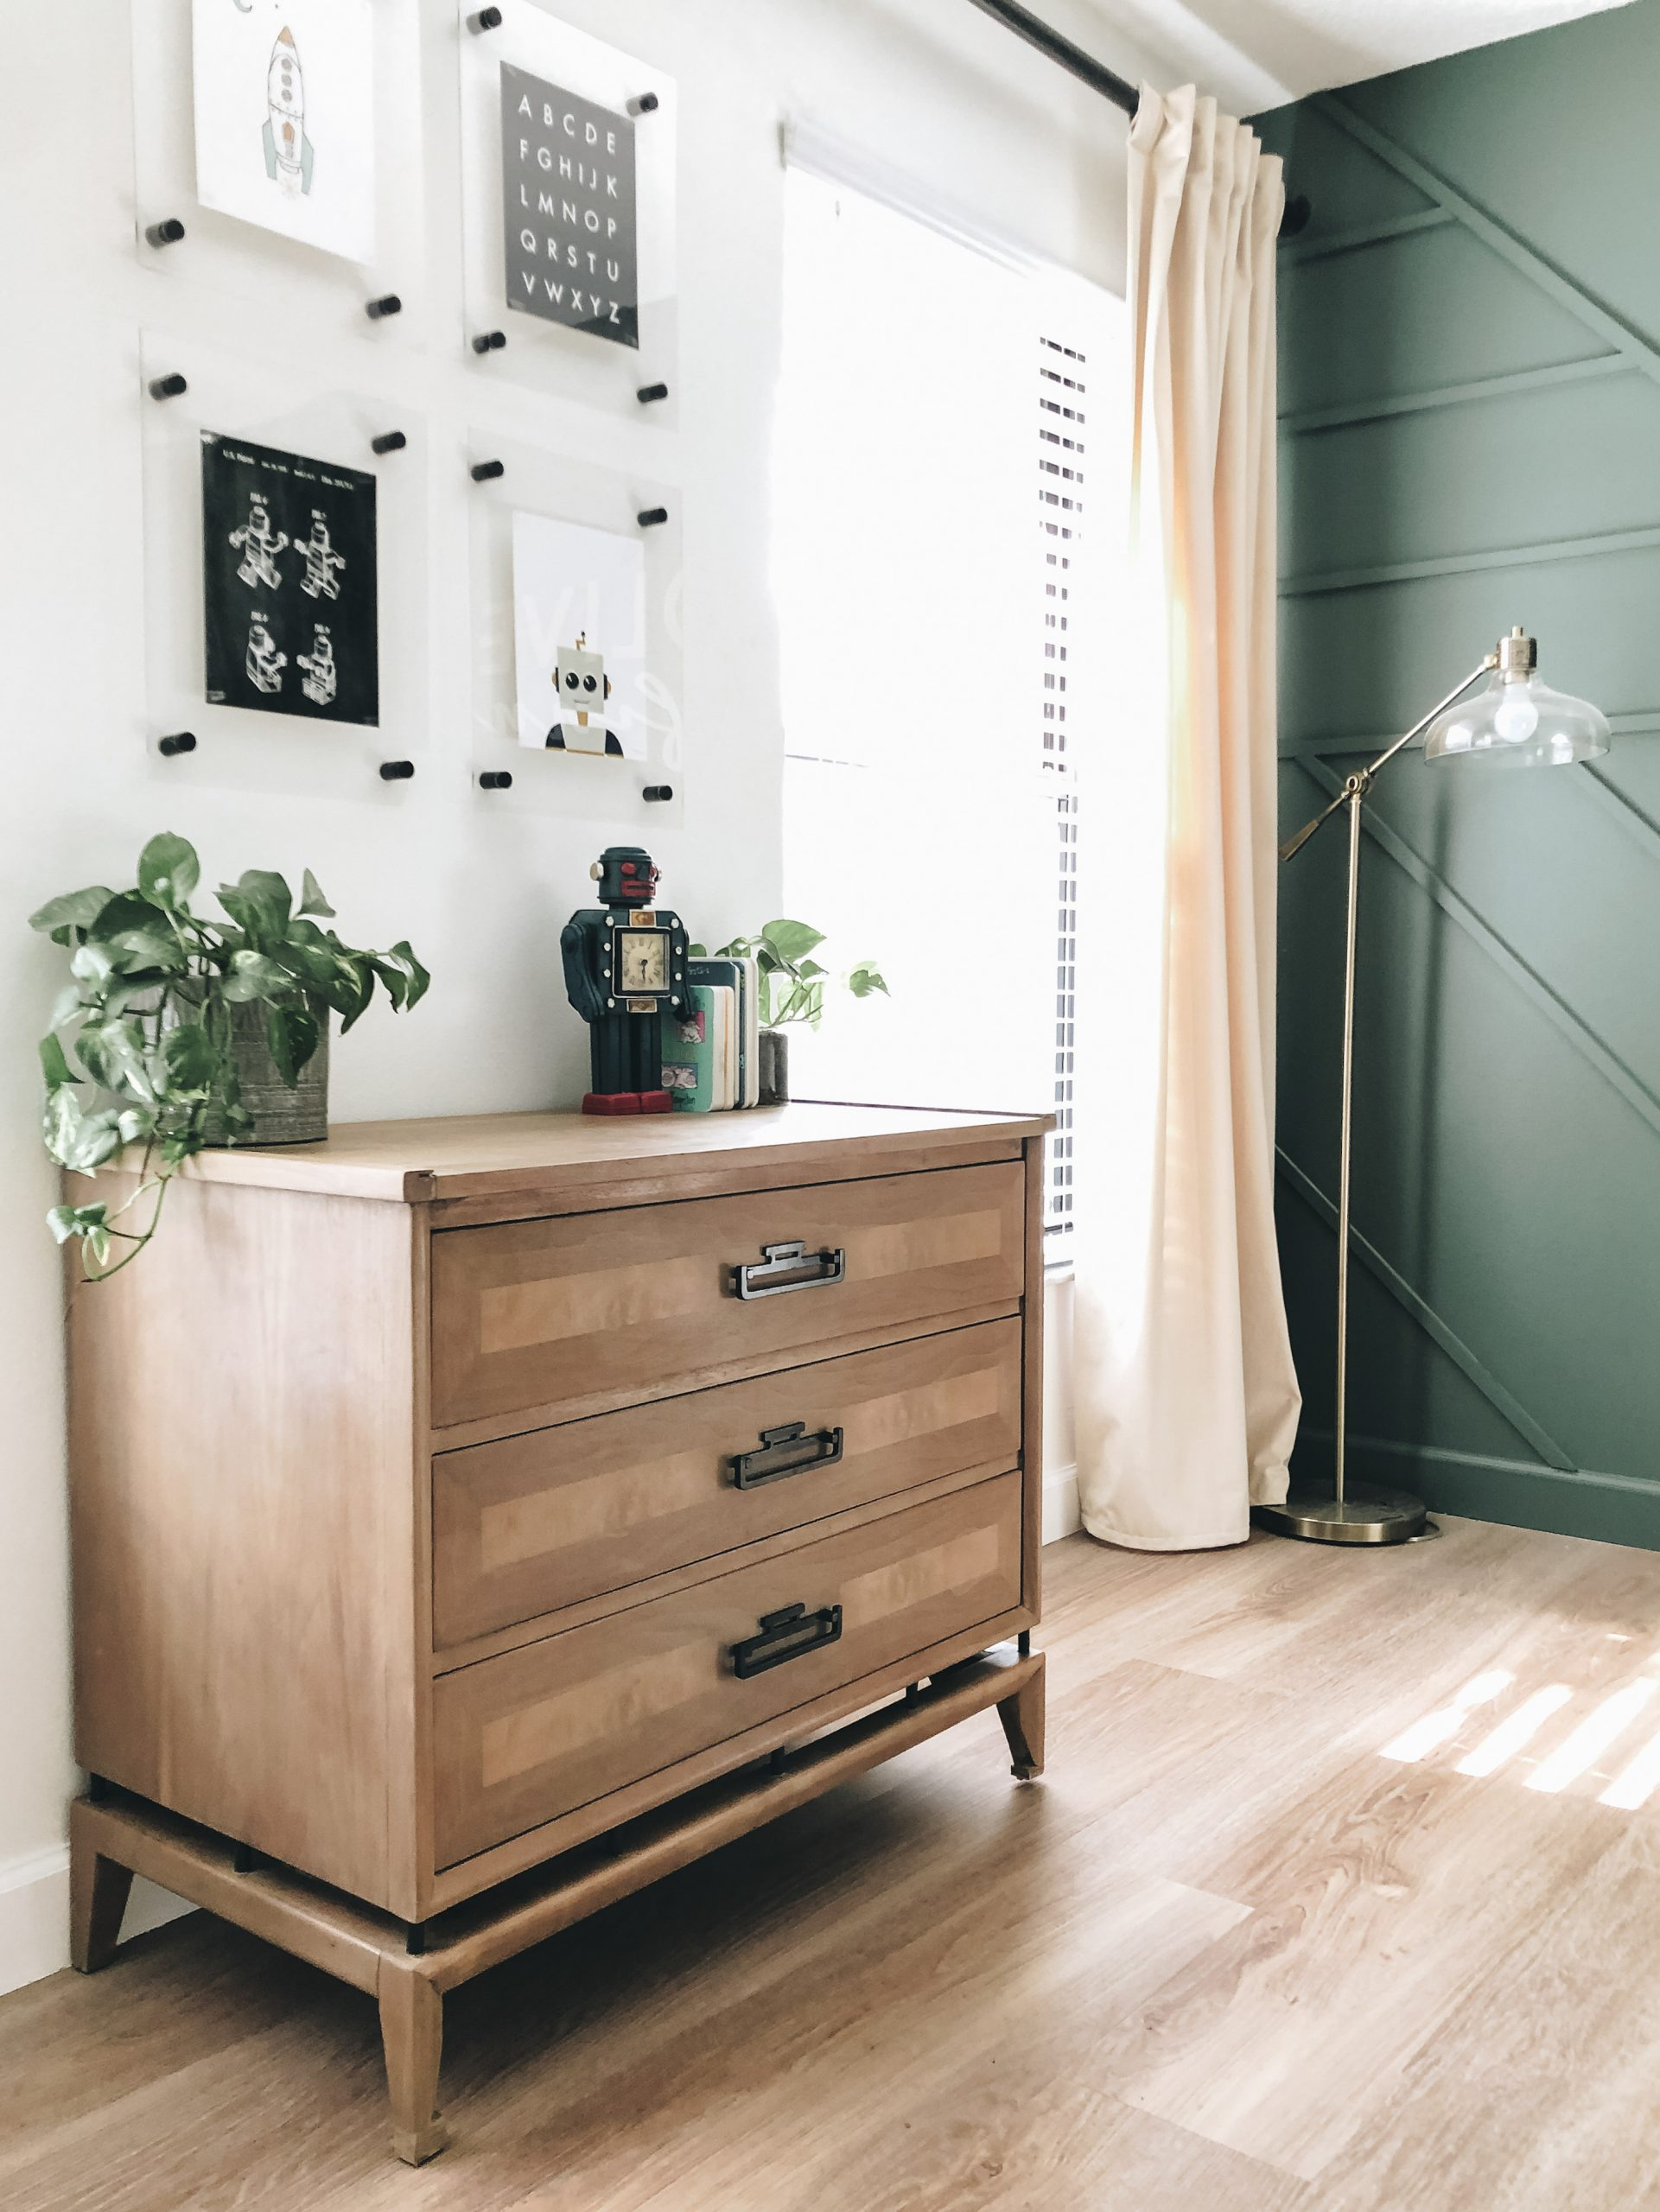 How To Strip And Bleach Previously Stained Wood Furniture Within The Grove